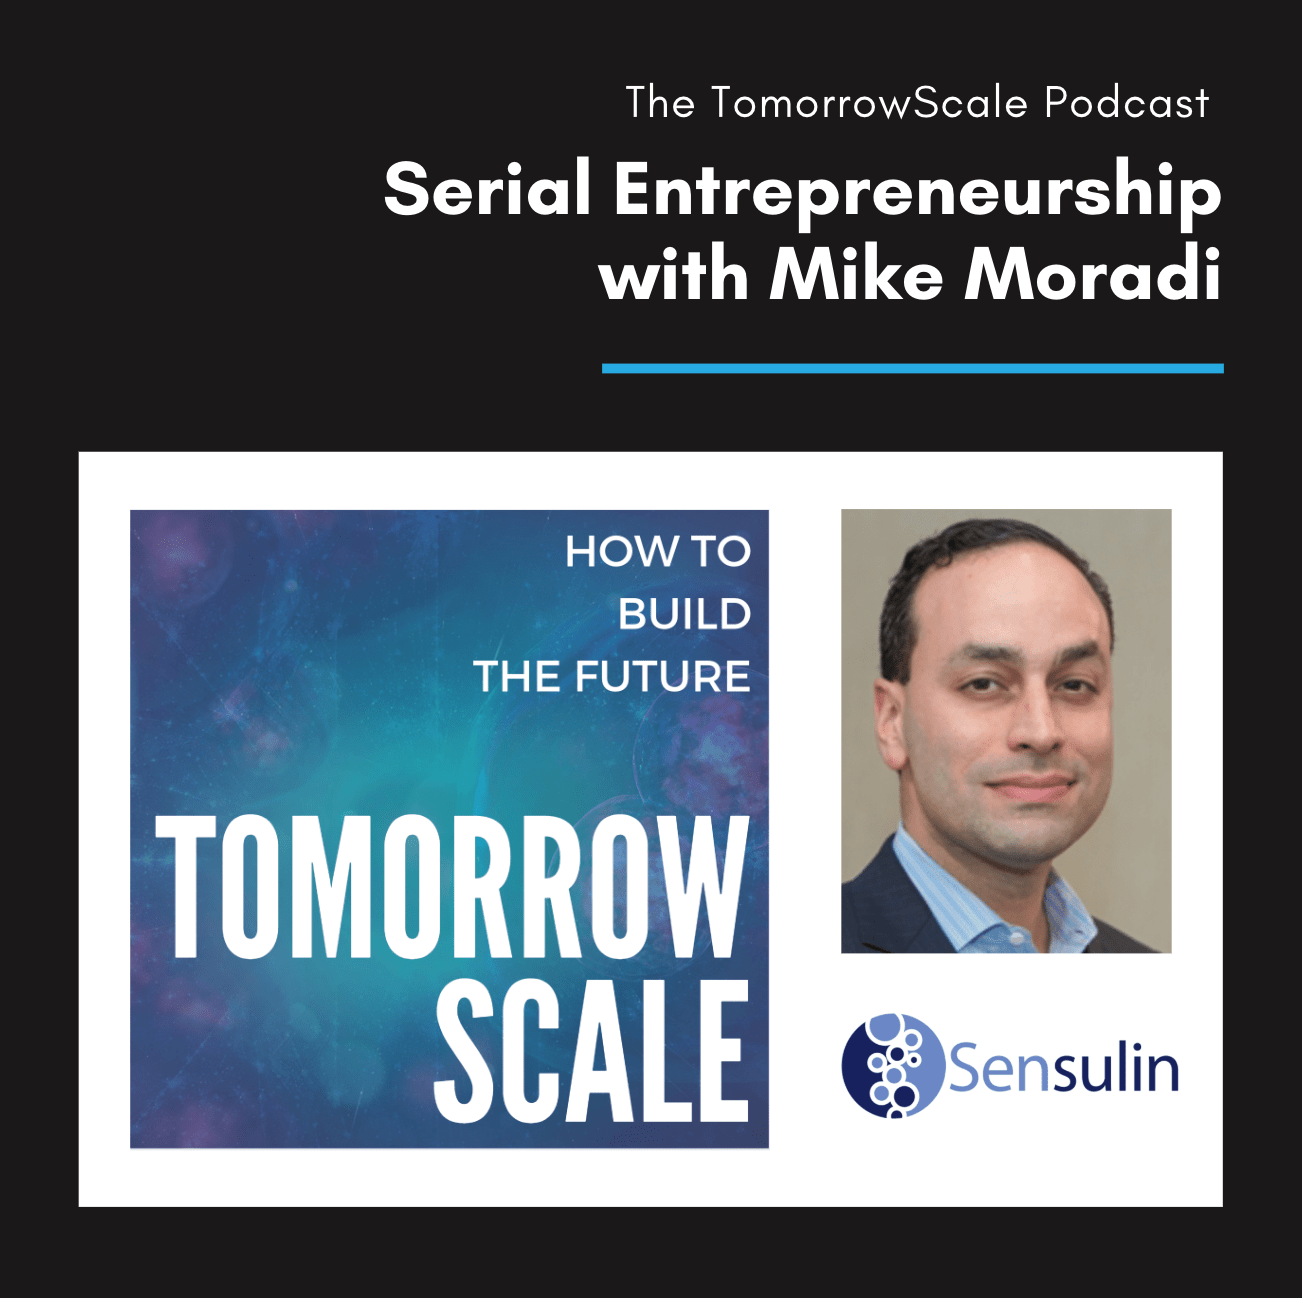 Serial (Hard Science) Entrepreneurship - Sensulin